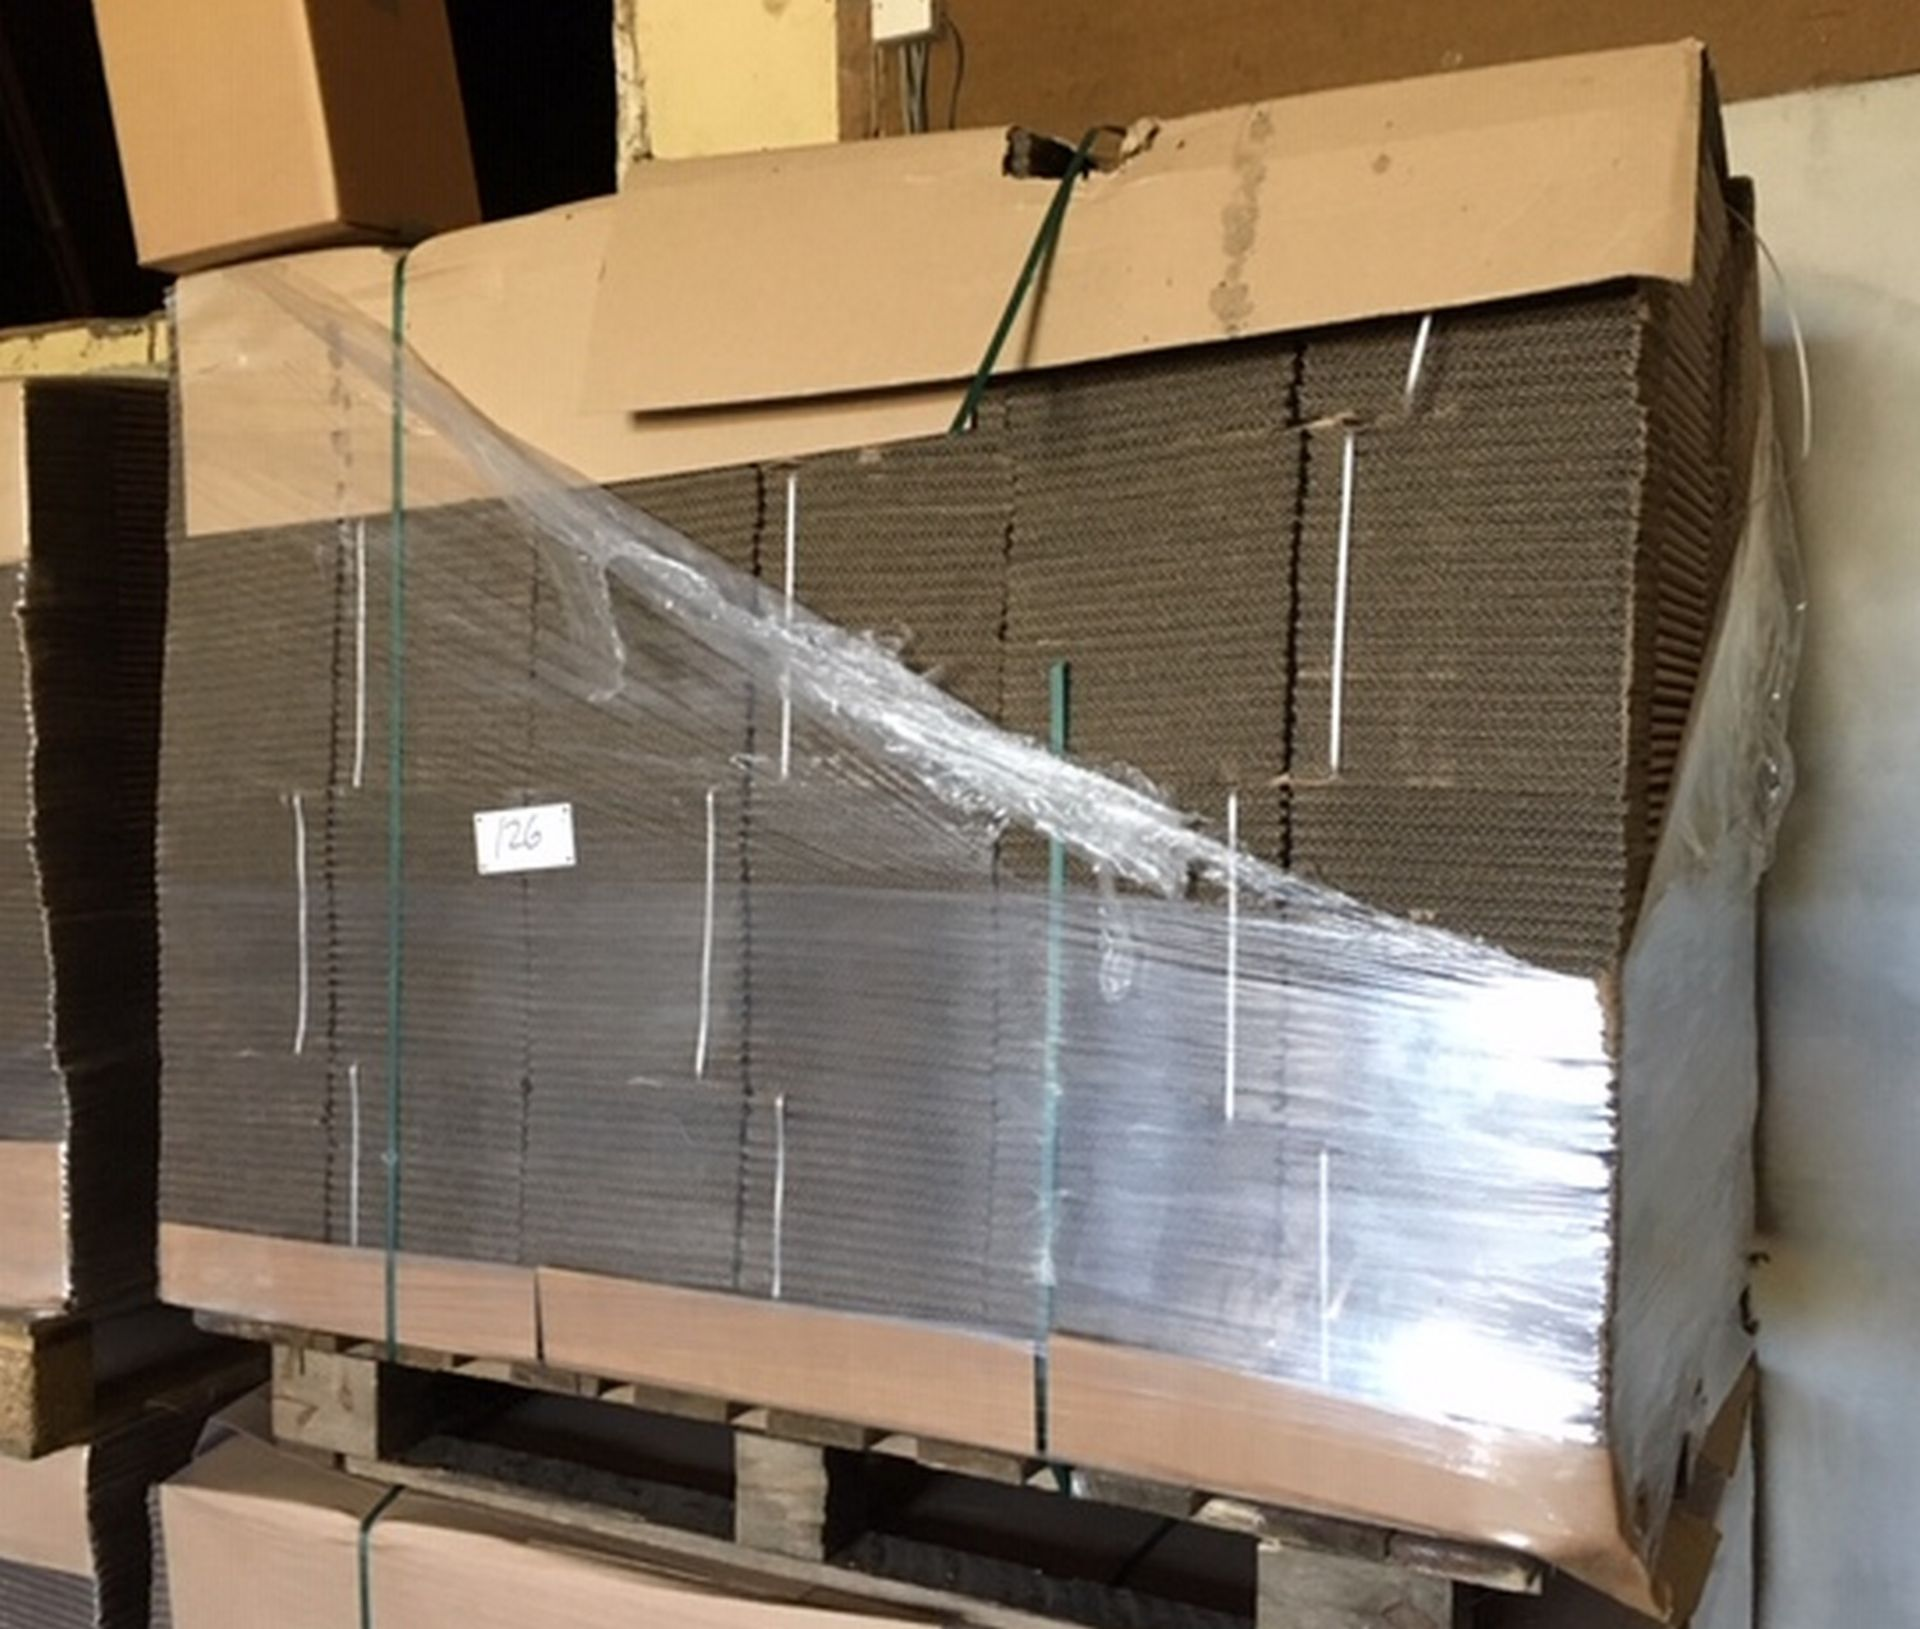 Lot 126 - Pallet of 480 Cardboard Boxes 210mm x 210mm x 232mm.